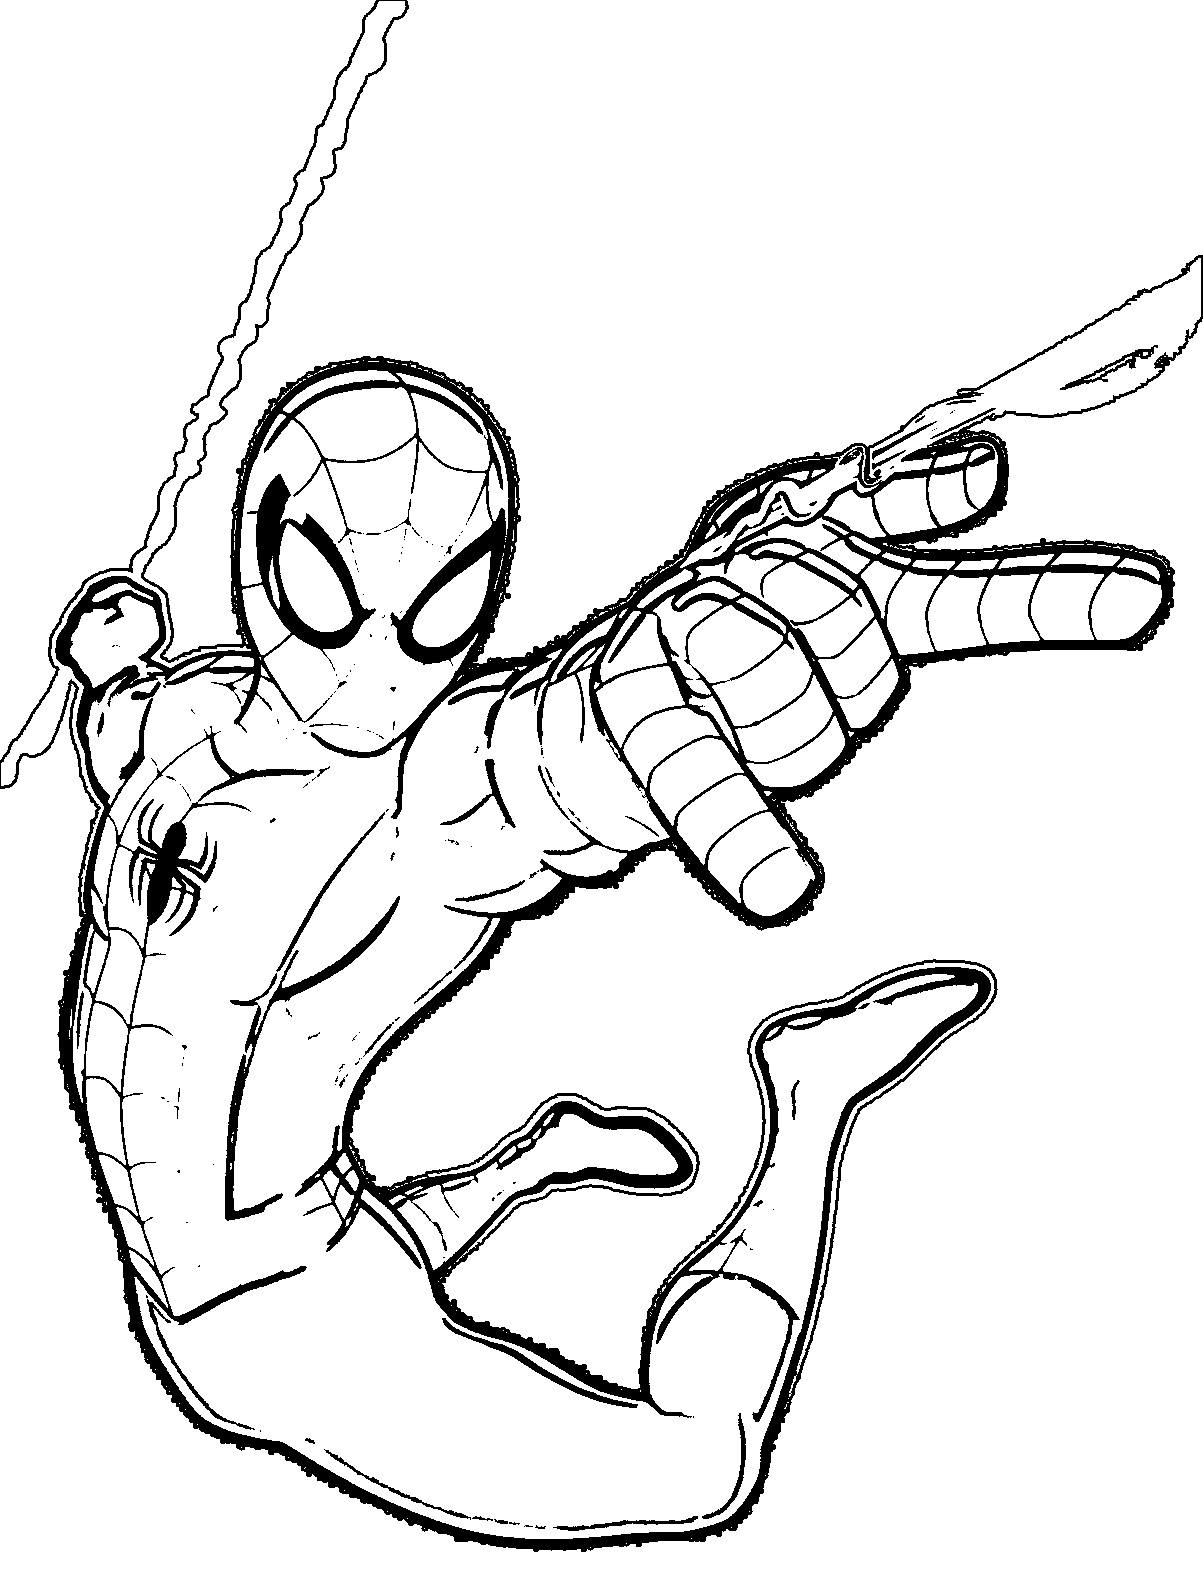 Spiderman Coloring Pages - Ultimate Spiderman Coloring Pages Coloringsuite